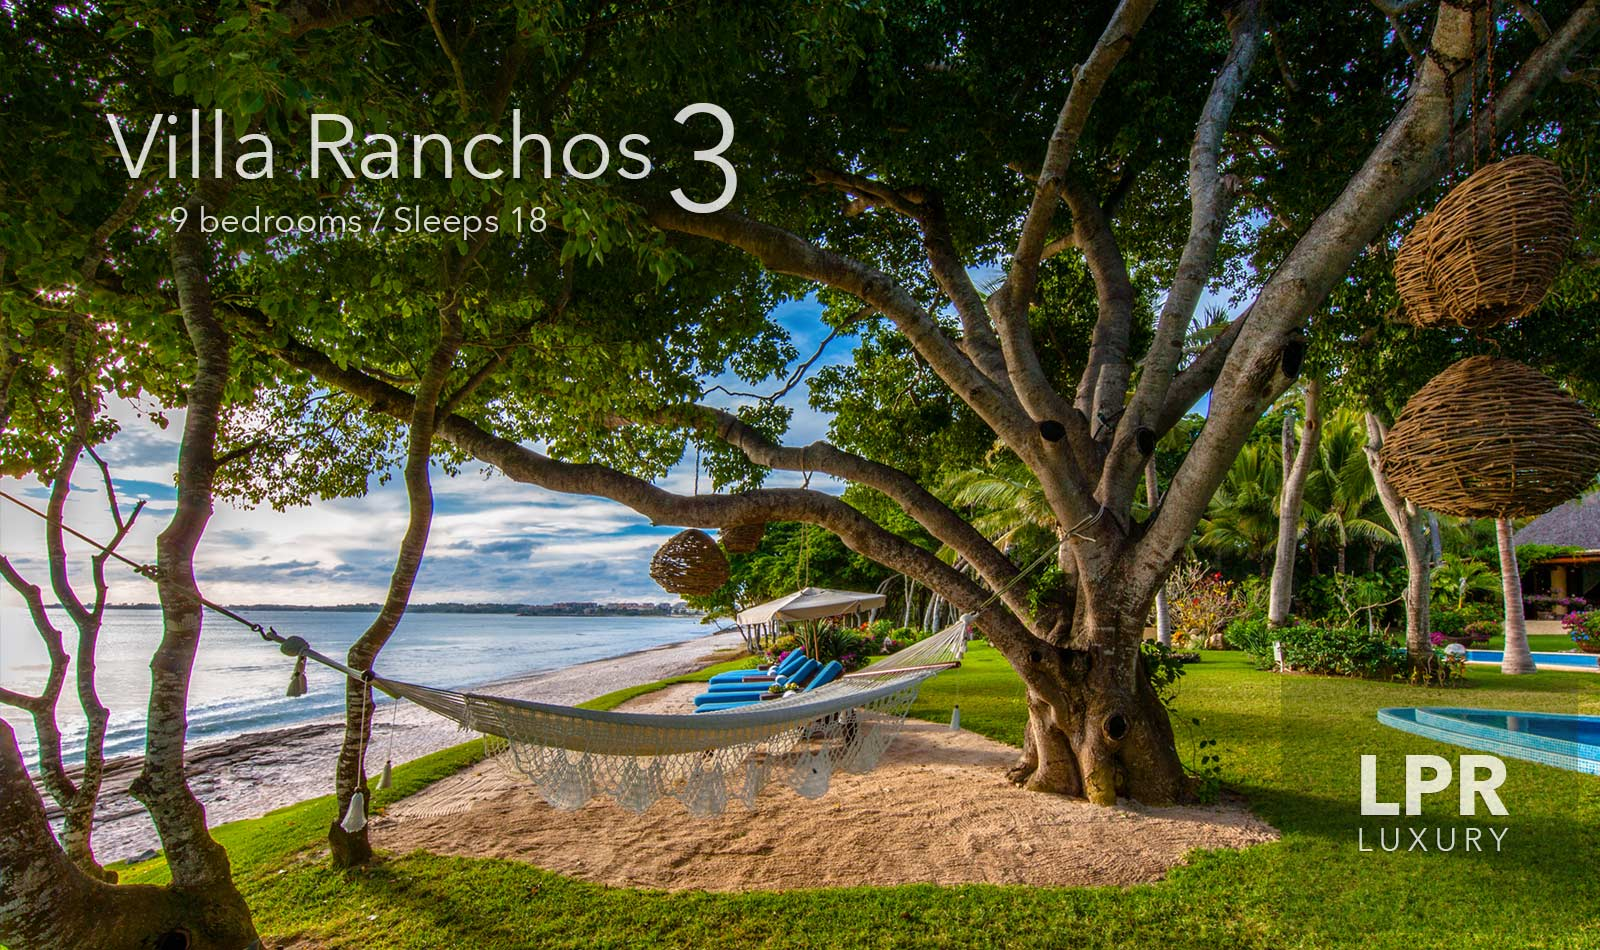 Villa Ranchos 3 - Luxury Punta Mita Real Estate and Vacation Rentals Villas